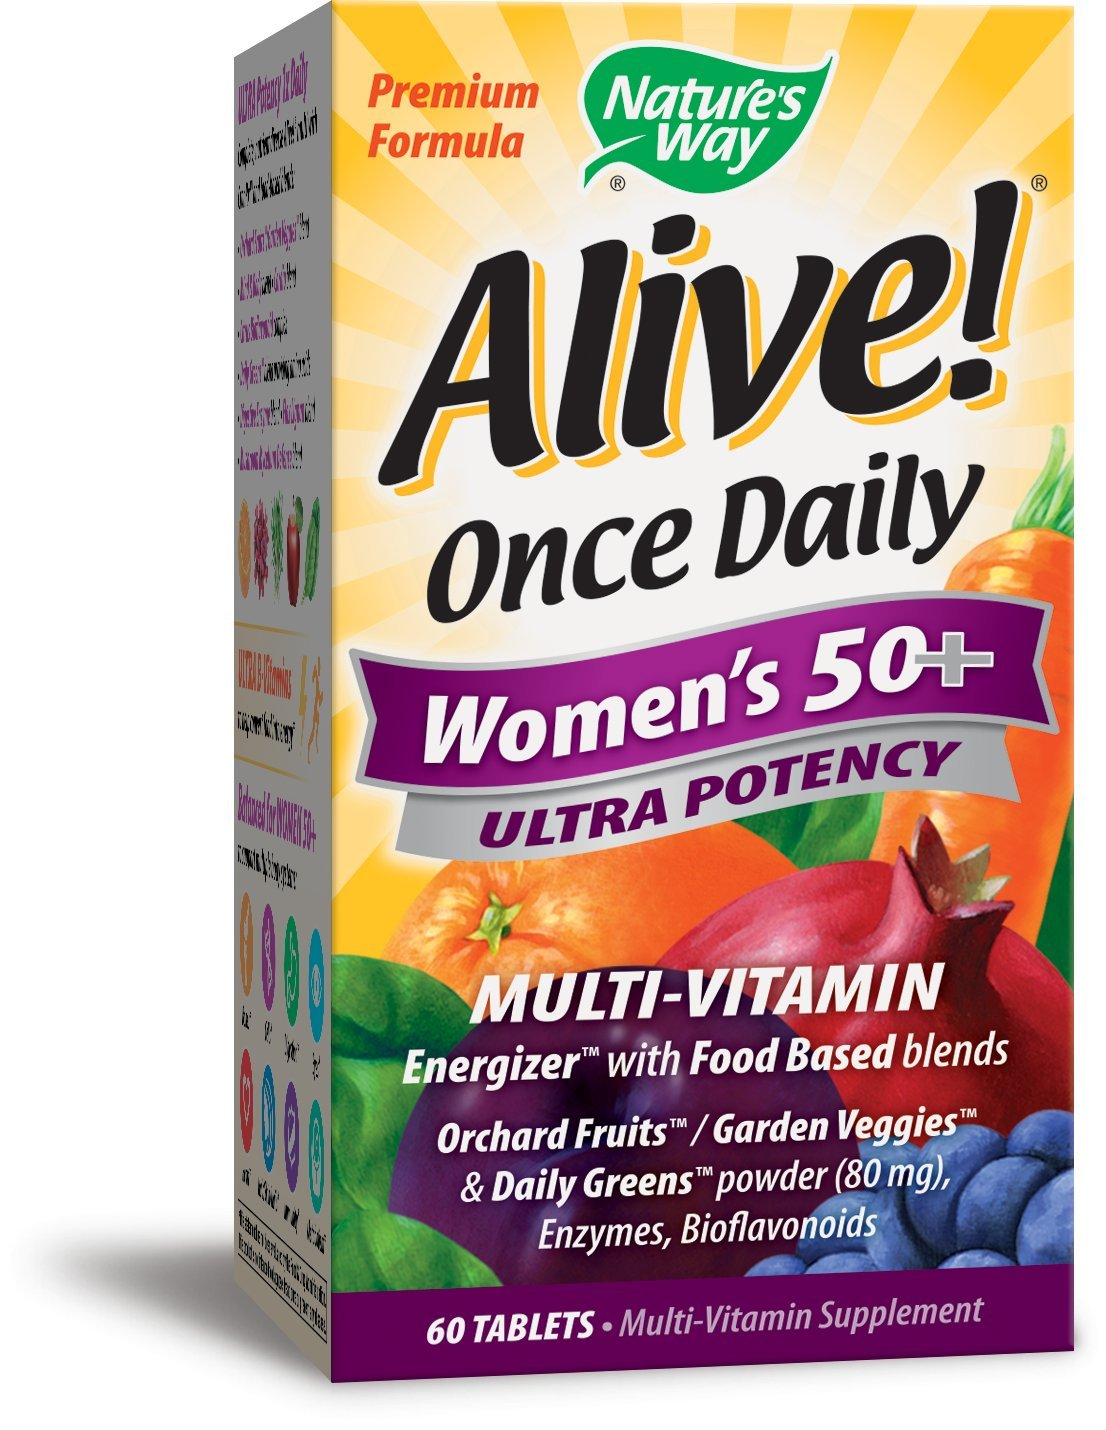 Nature's Way Alive! Once Daily Women's 50+ Multivitamin, Ultra Potency, Food-Based Blends (230mg per serving), 60 Tablets